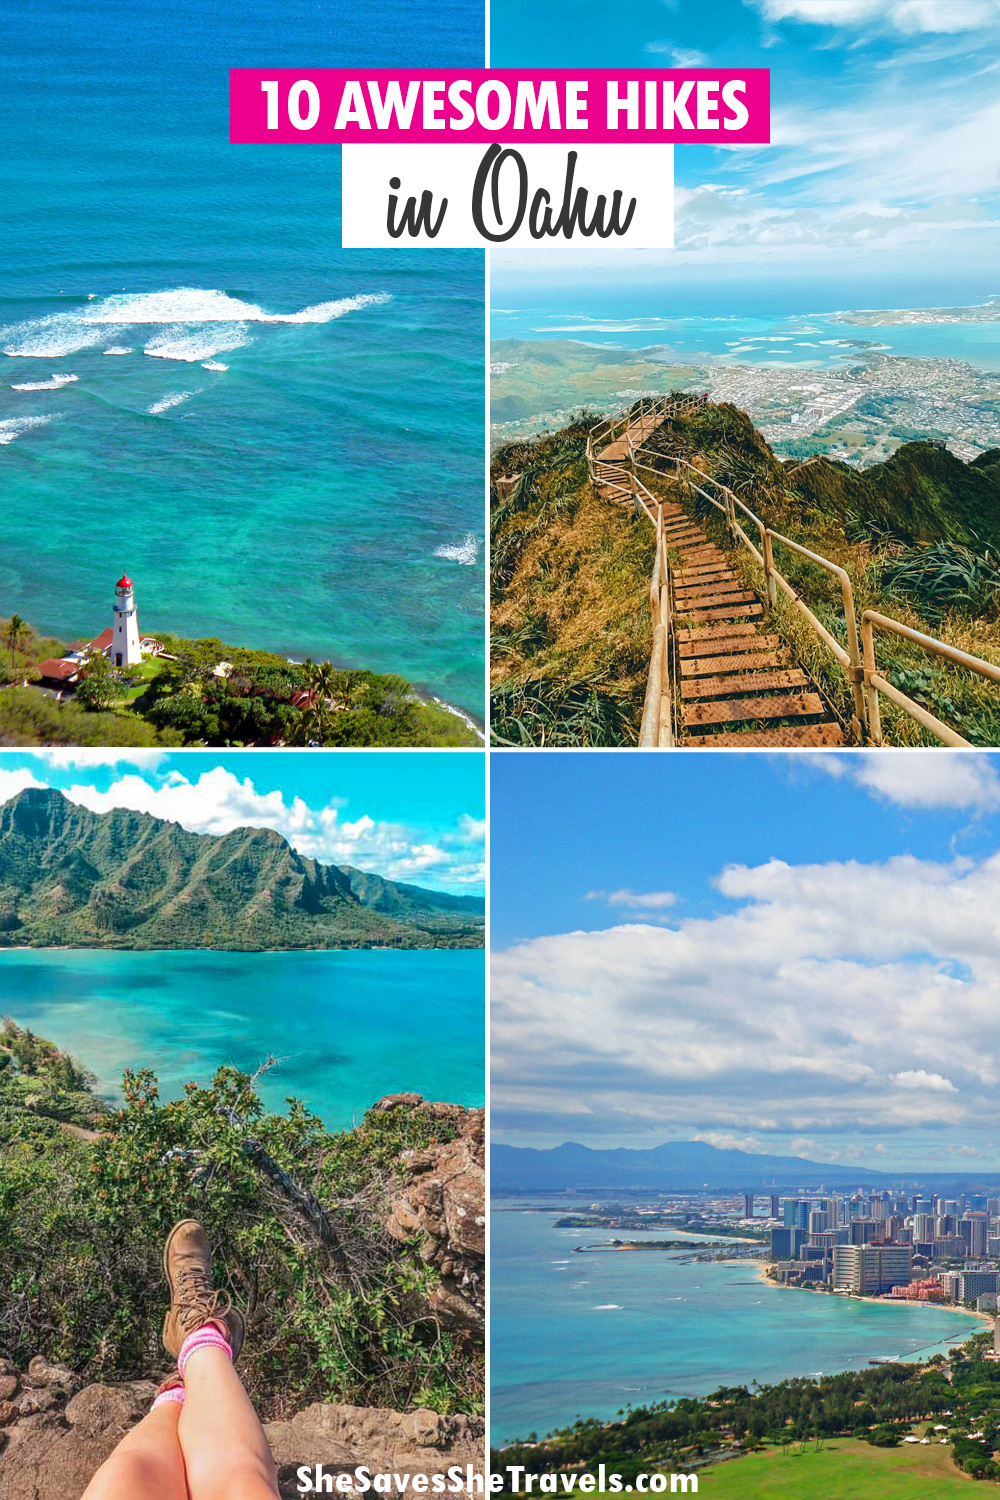 10 awesome hikes in Oahu